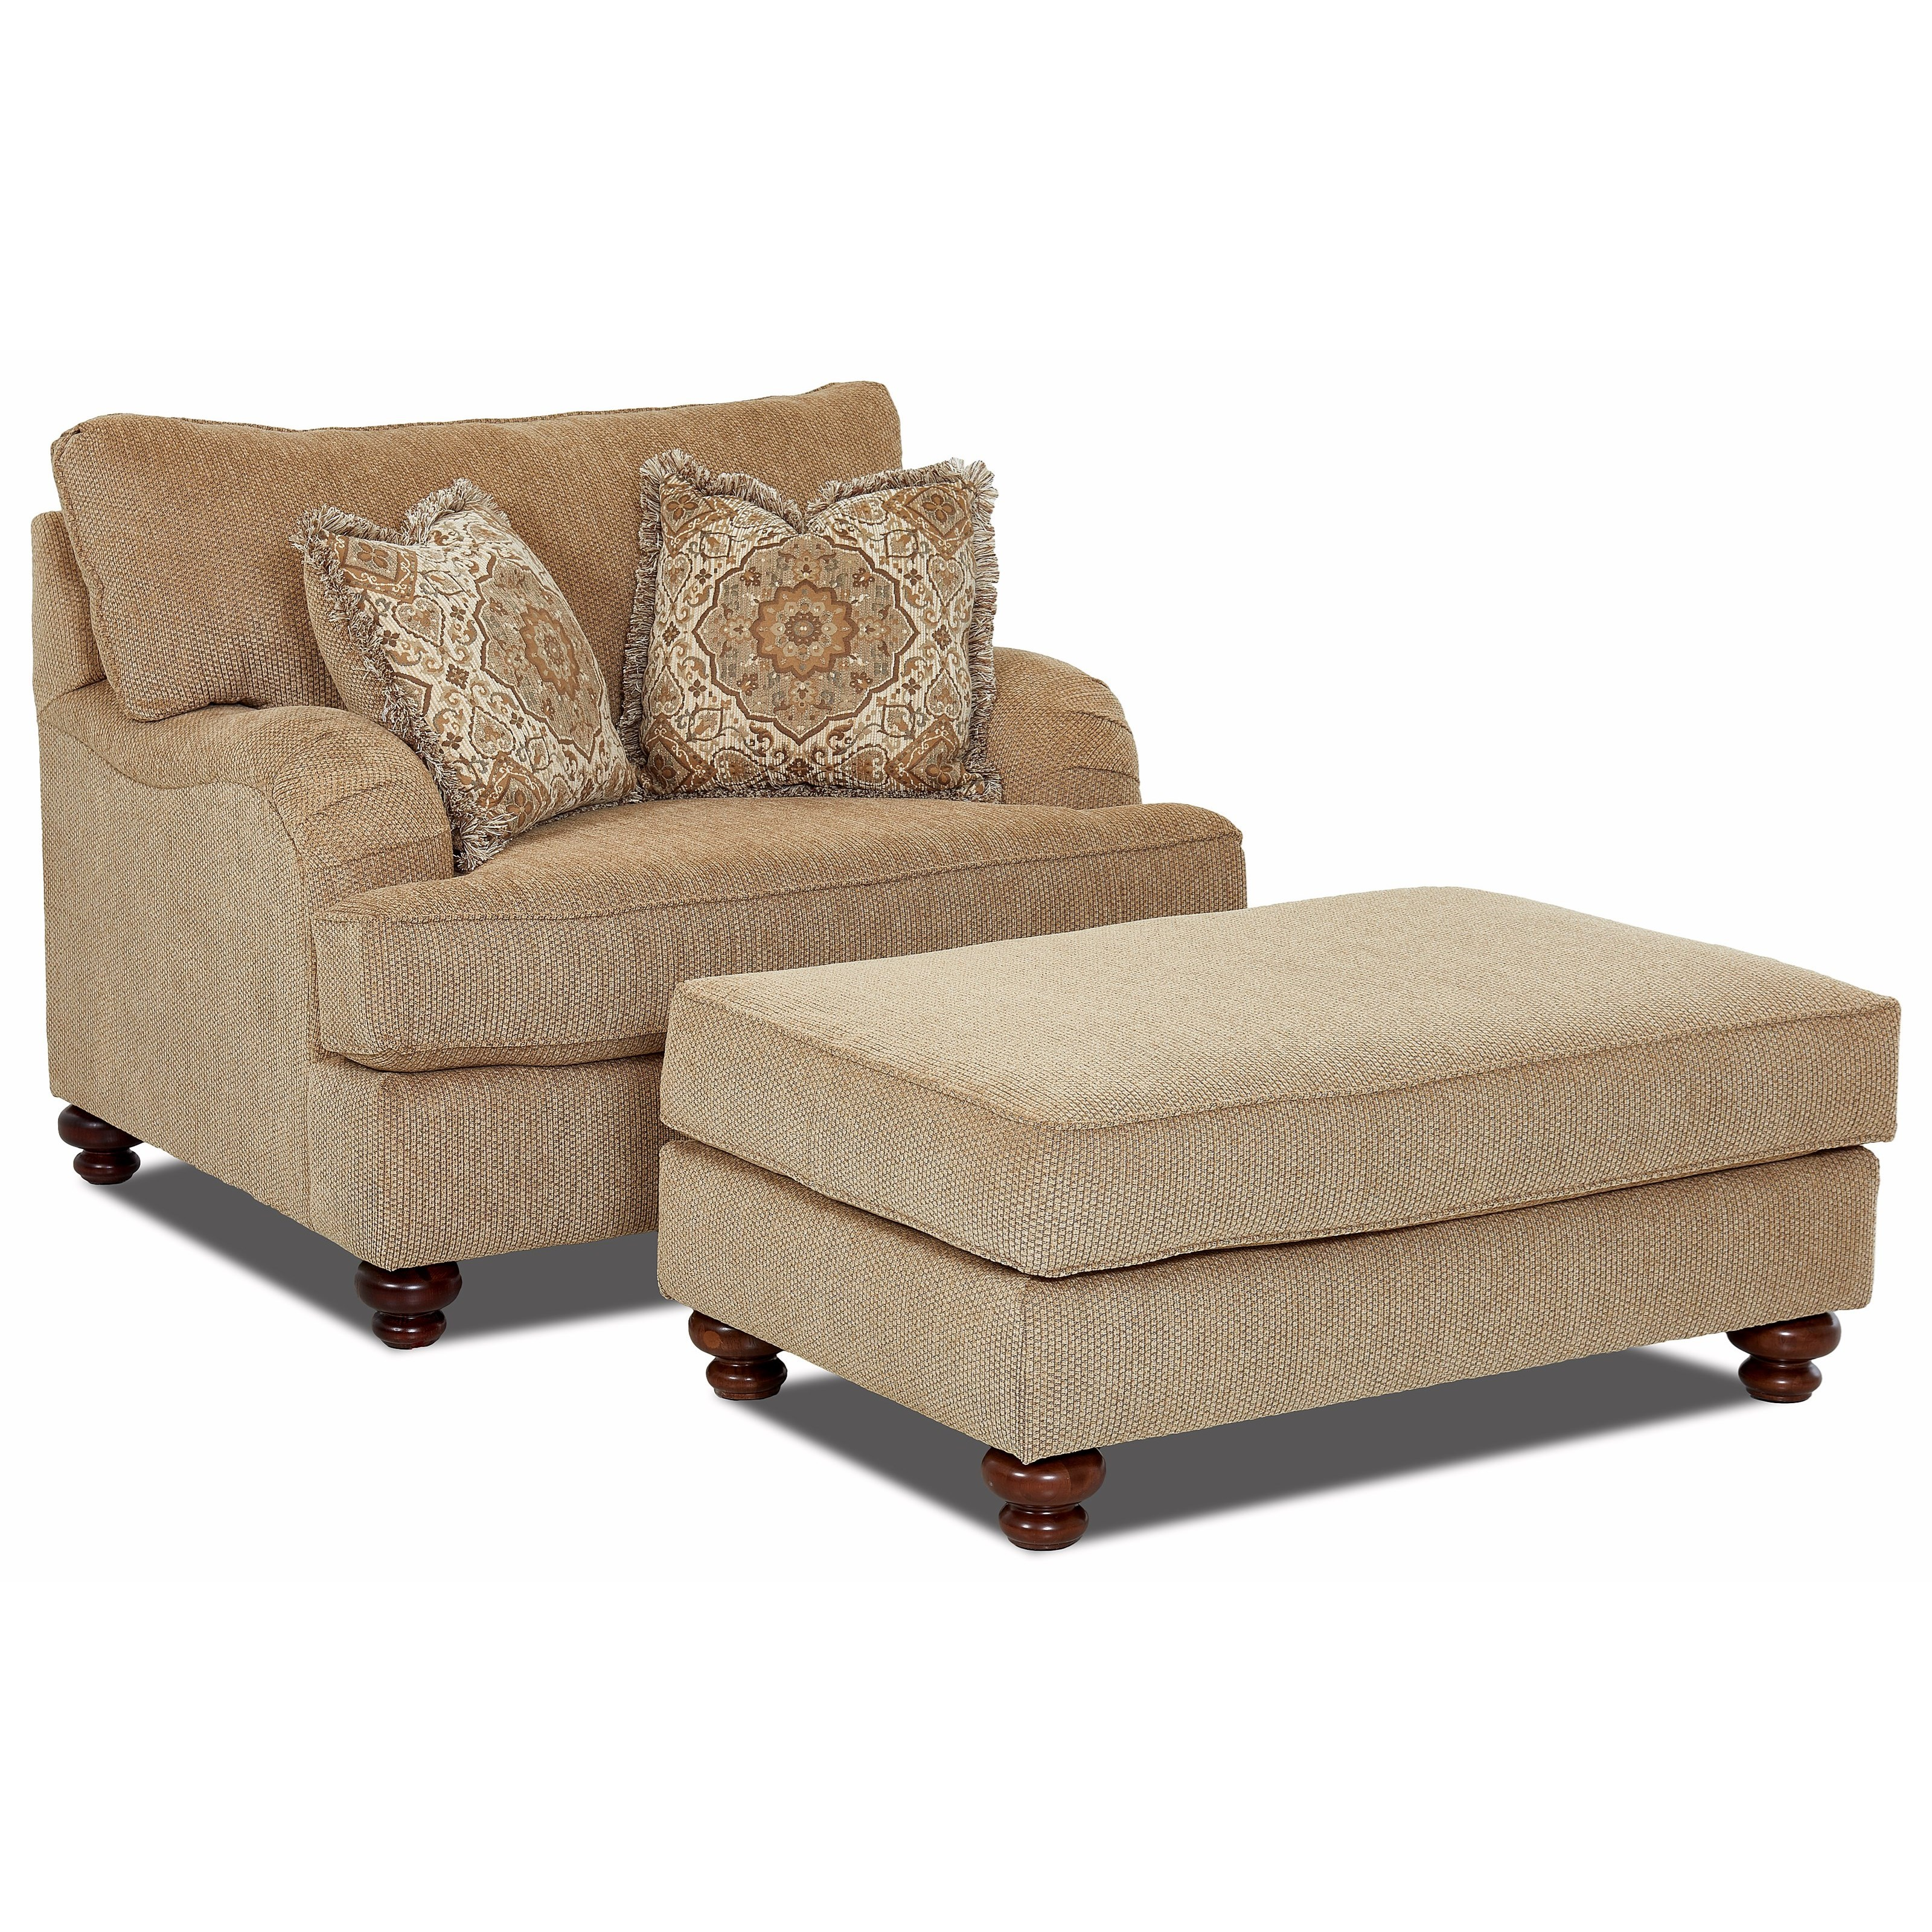 Oversized Chair And Ottoman Set By Klaussner Wolf And Gardiner